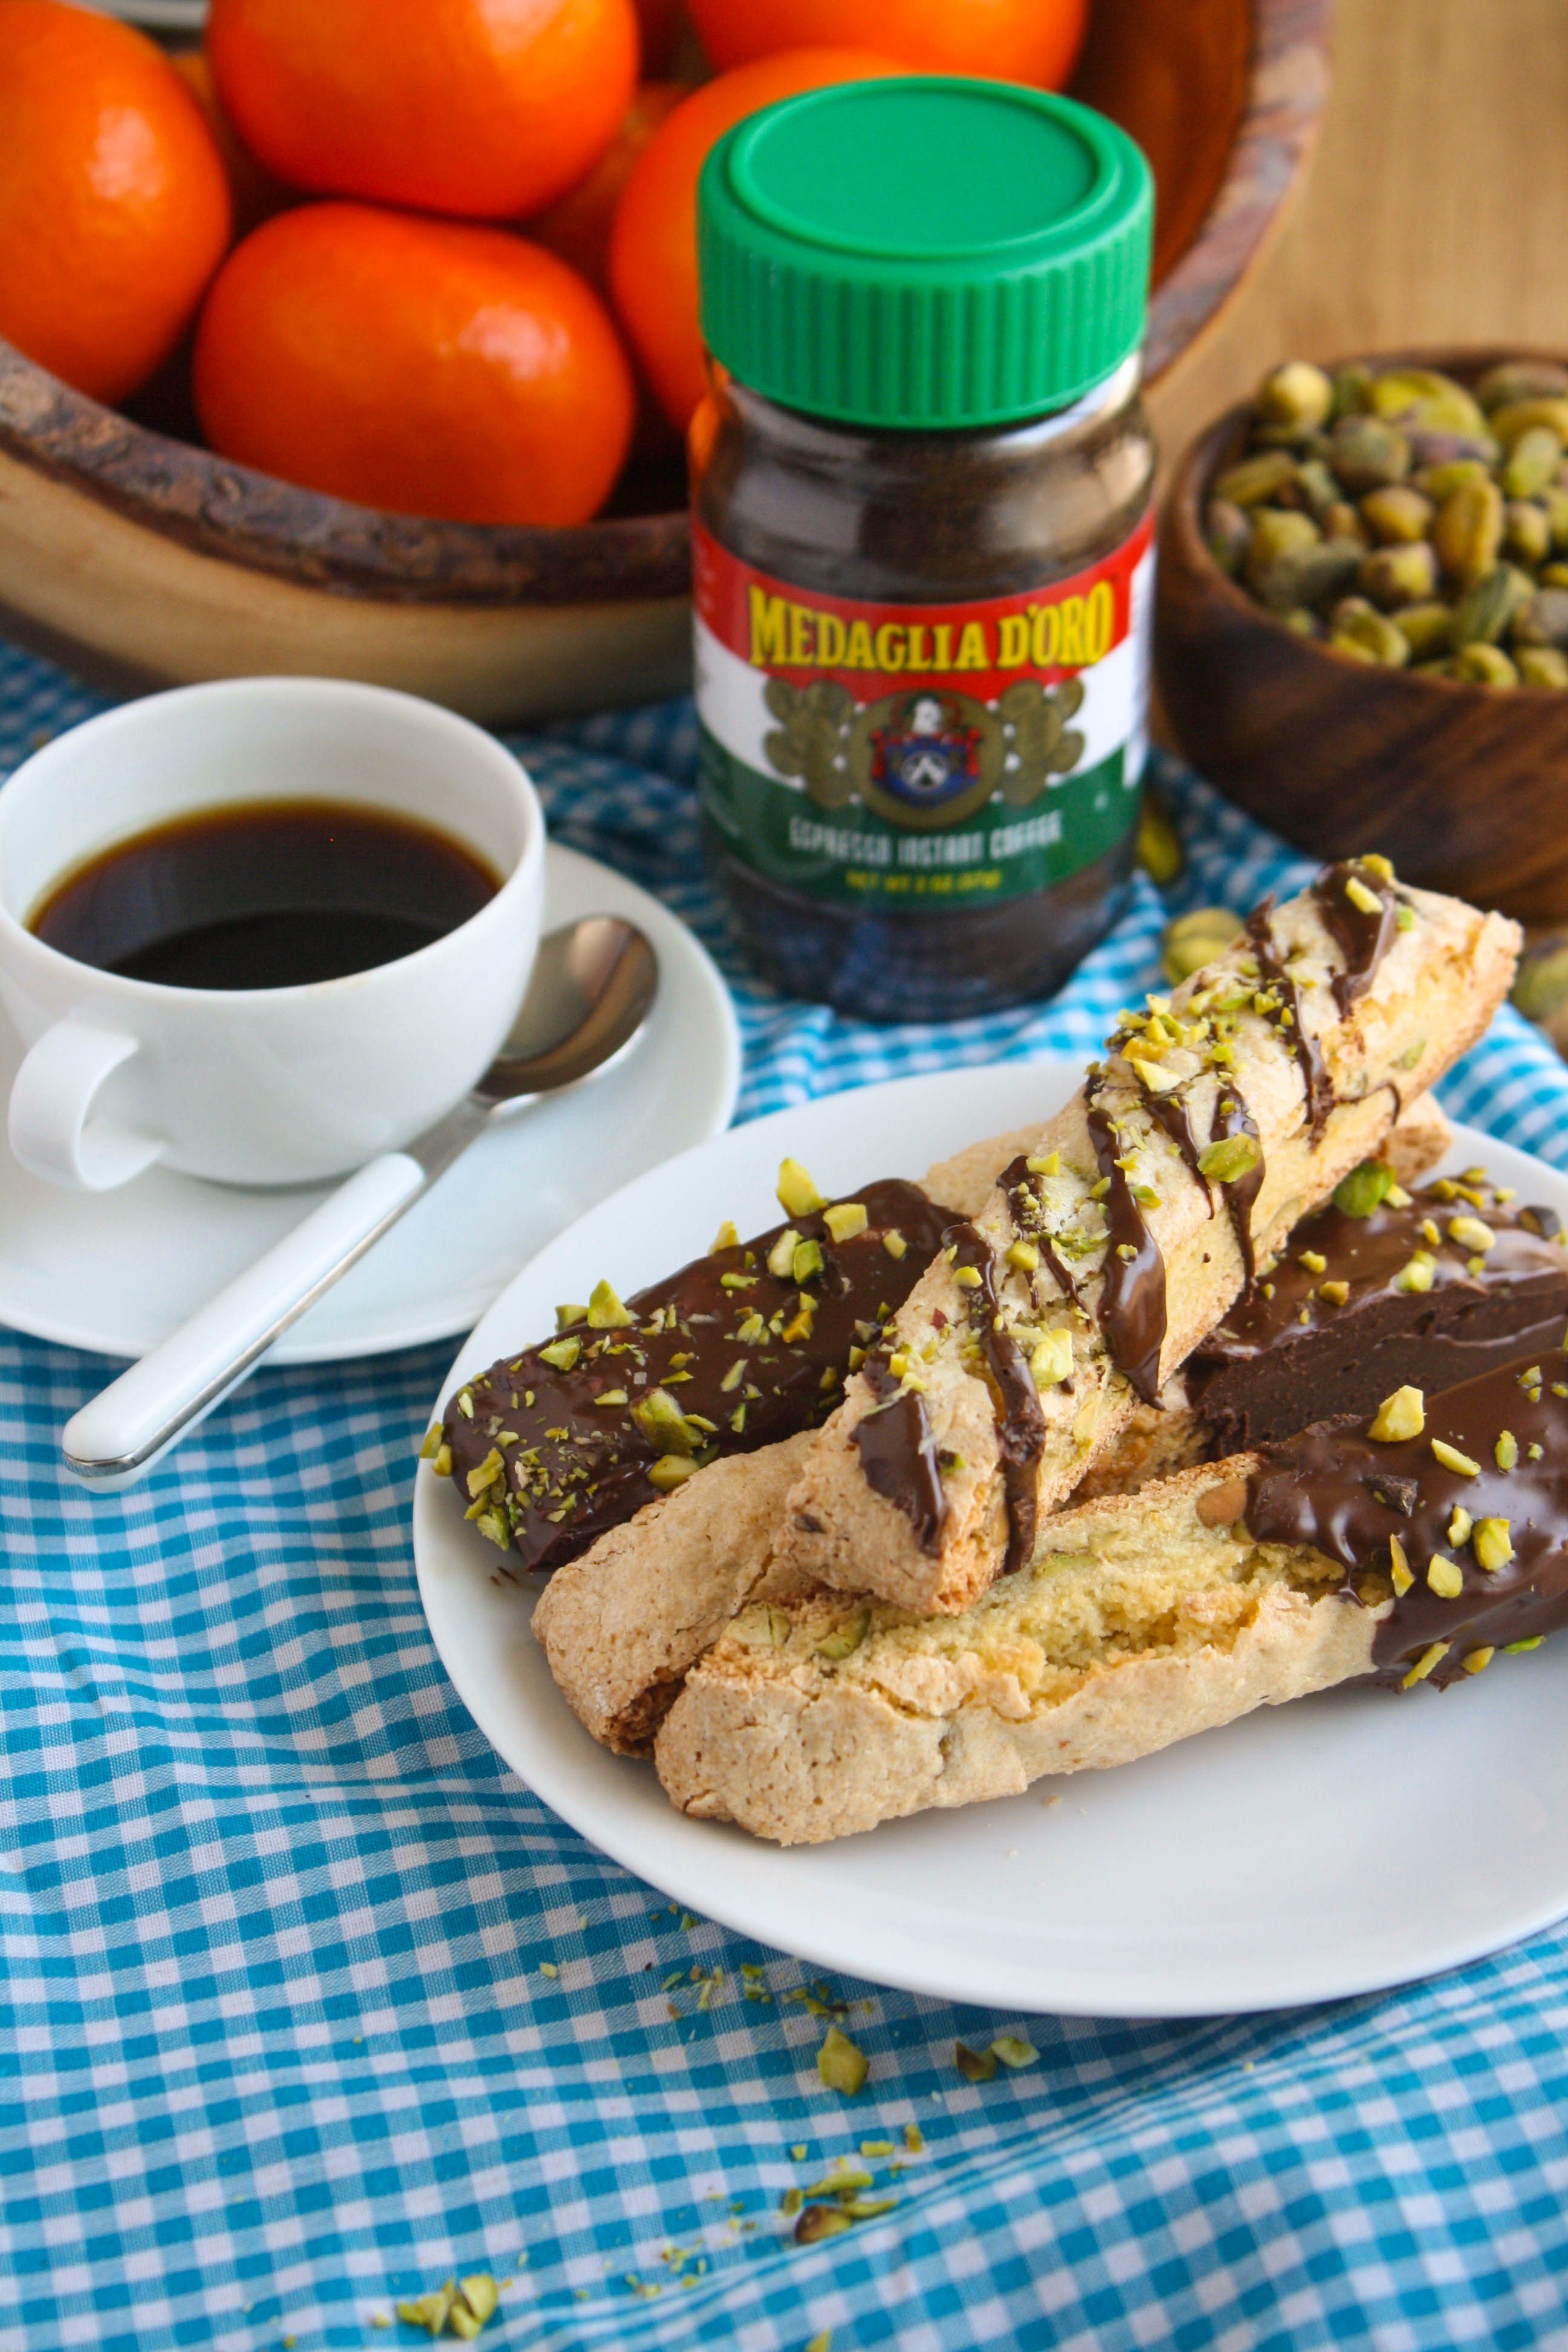 Chocolate-Espresso Dipped Orange and Pistachio Biscotti are such tasty cookies! You could serve these treats anytime, even at breakfast with coffee, or for dessert!